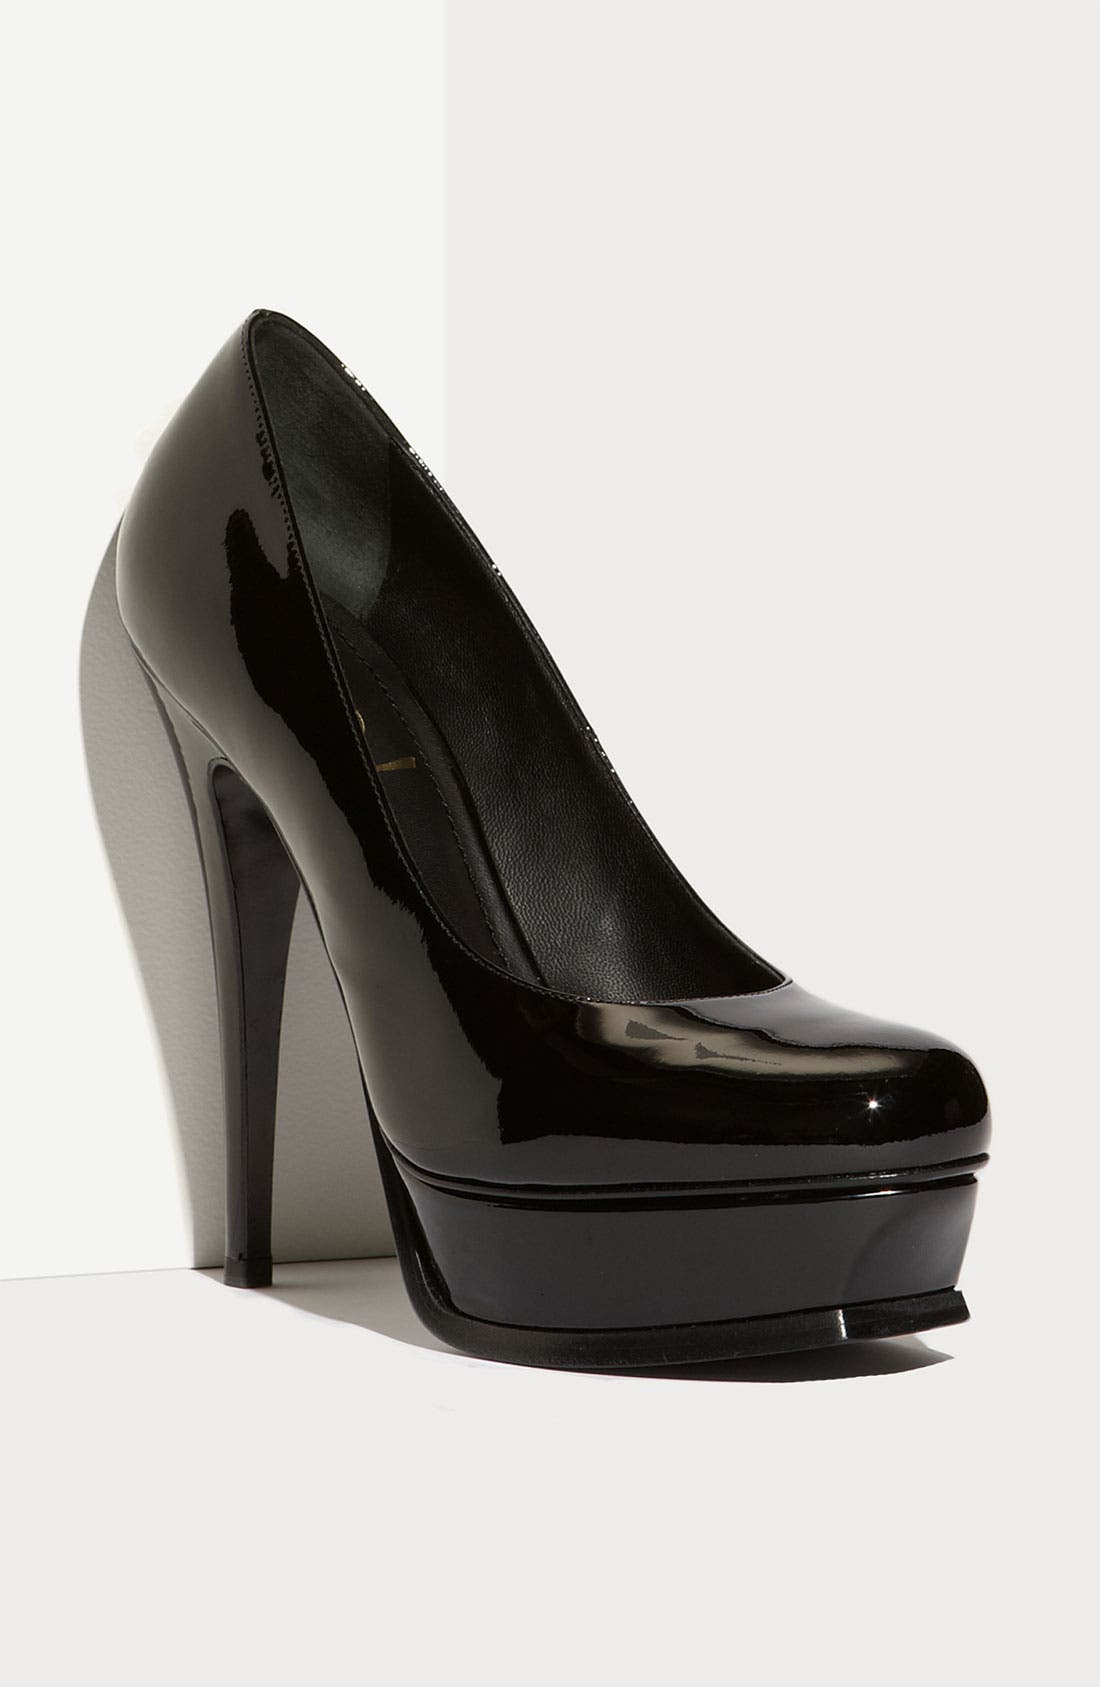 SAINT LAURENT,                             Yves Saint Laurent 'Tribute' Pump,                             Main thumbnail 1, color,                             001